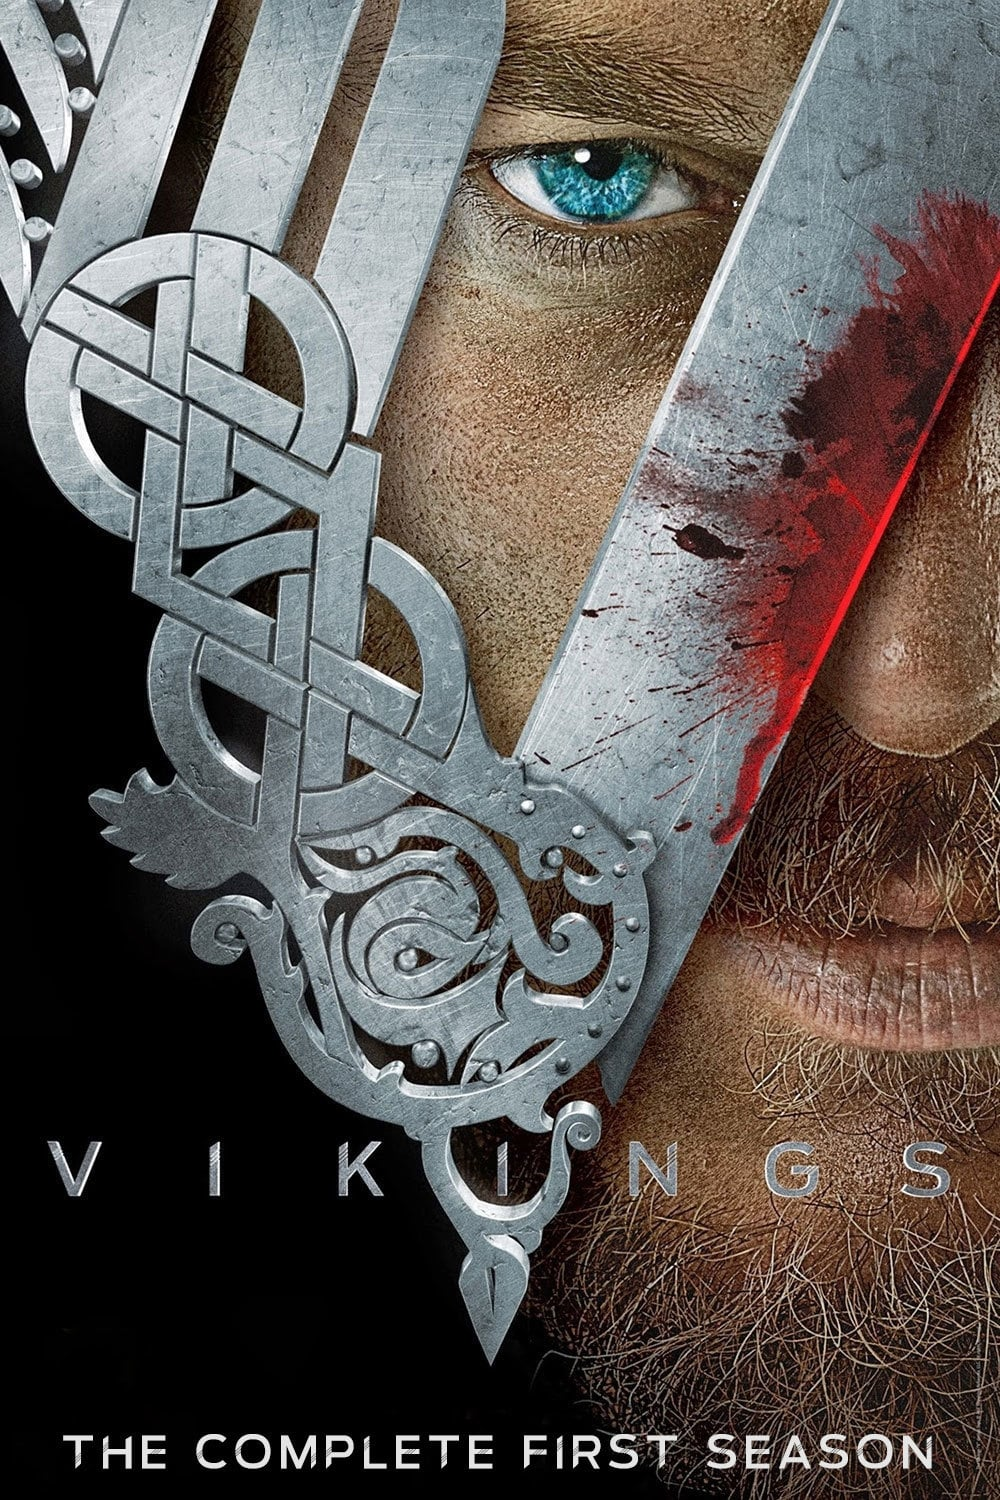 http://eroxxxpictures.com/vikings-1a-temporada-2013-bdrip-bluray-720p-dublado-torrent/